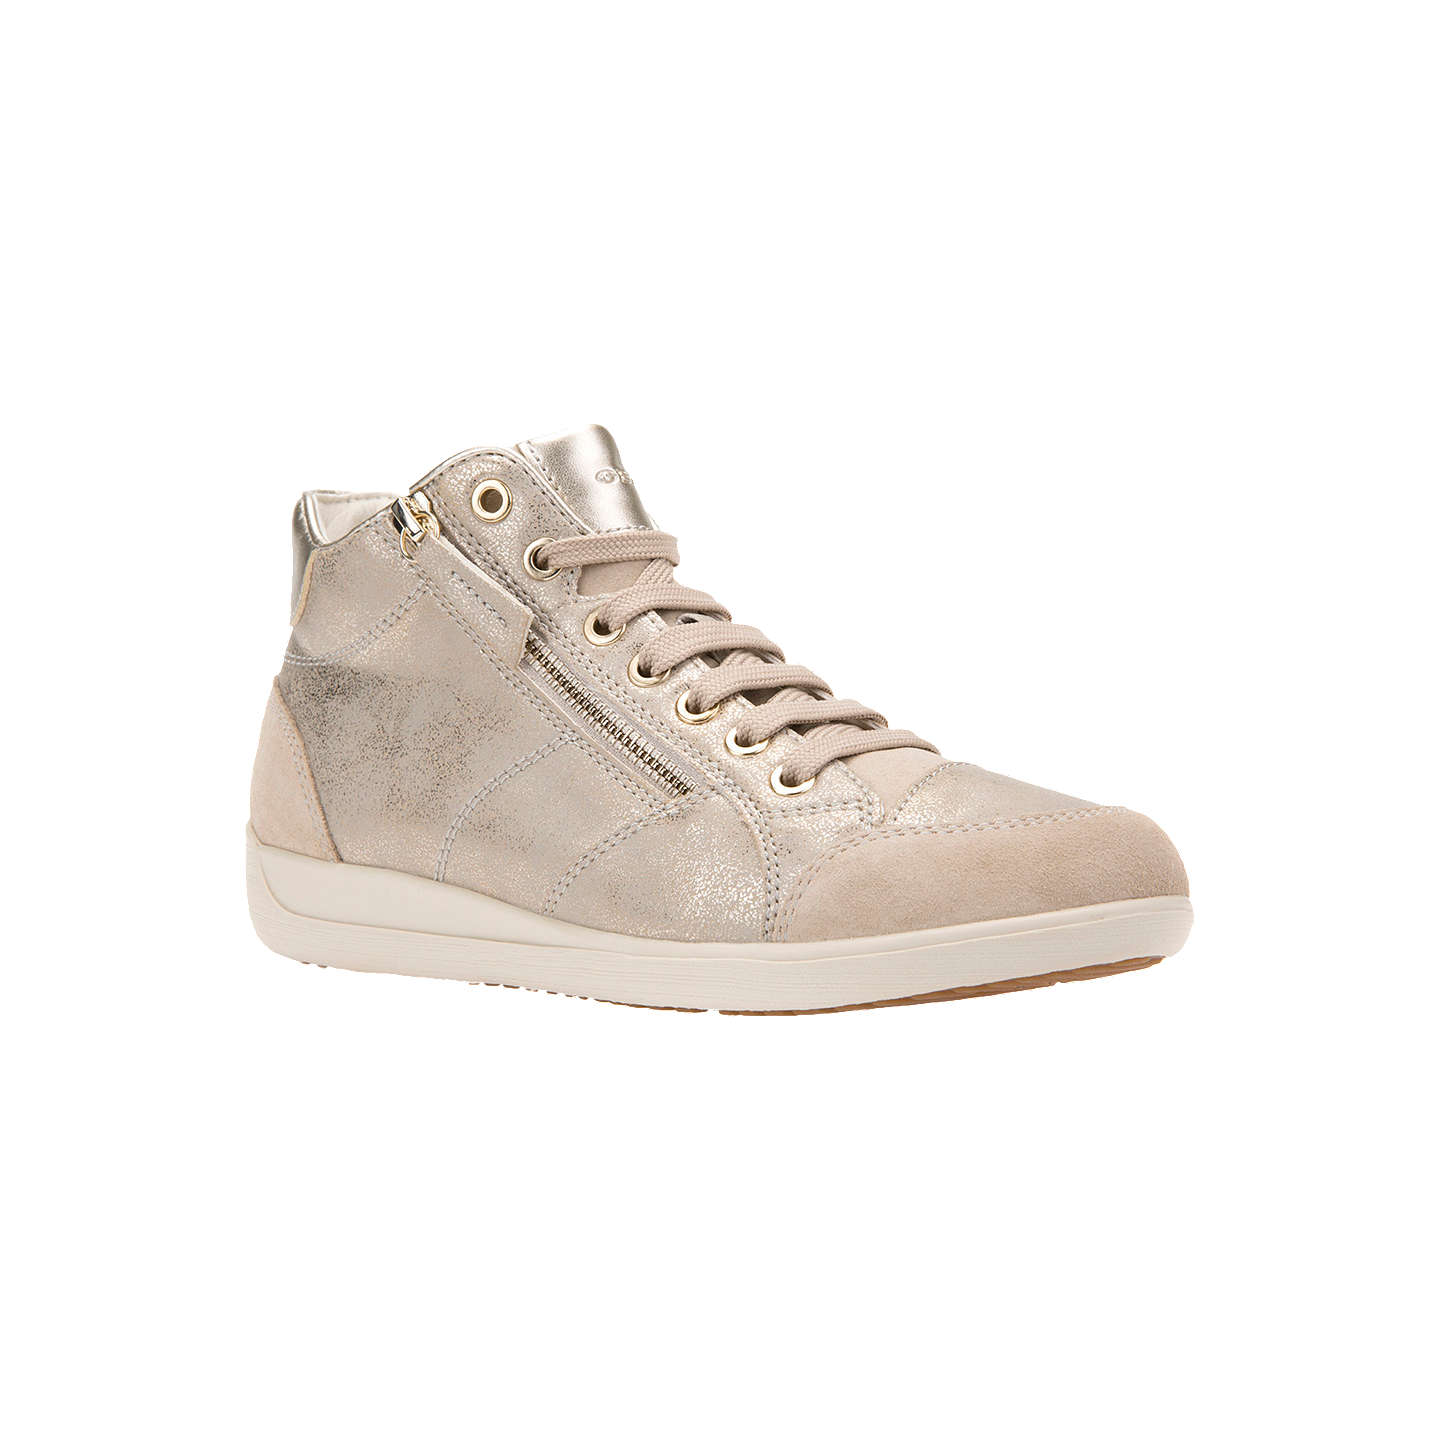 BuyGeox Women's Myria High Top Lace Up Trainers